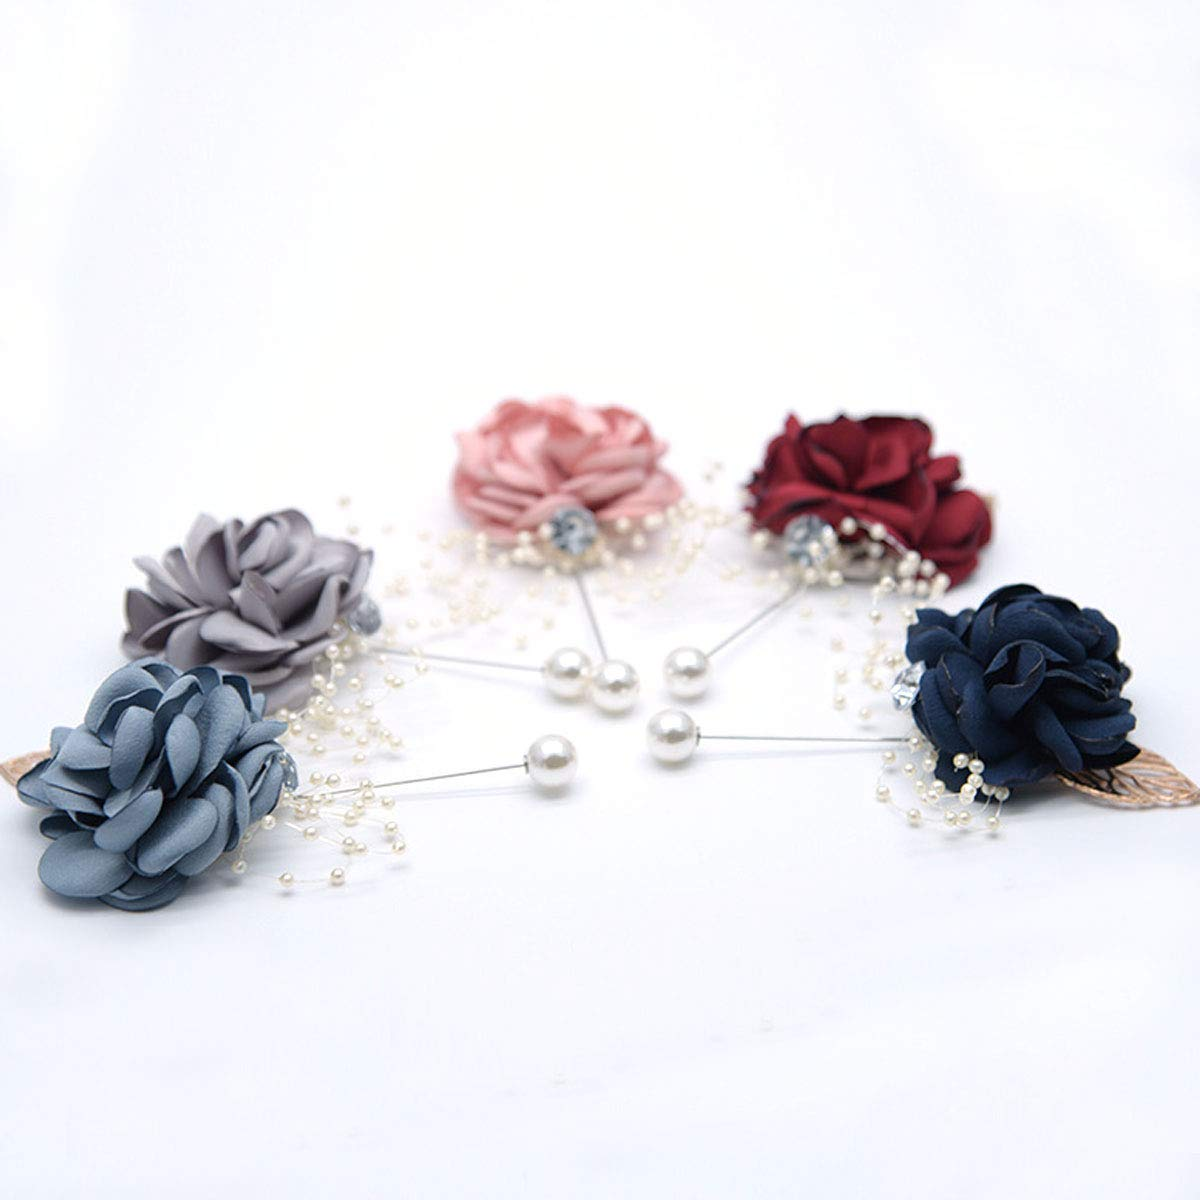 Pink Wrist Corsage Brooch Set of 4 Wedding Boutonniere Pins Groom Bridal Girl Wrist Flower Bracelet with Pearl Bead Wristband for Wedding Homecoming Prom Party Decor